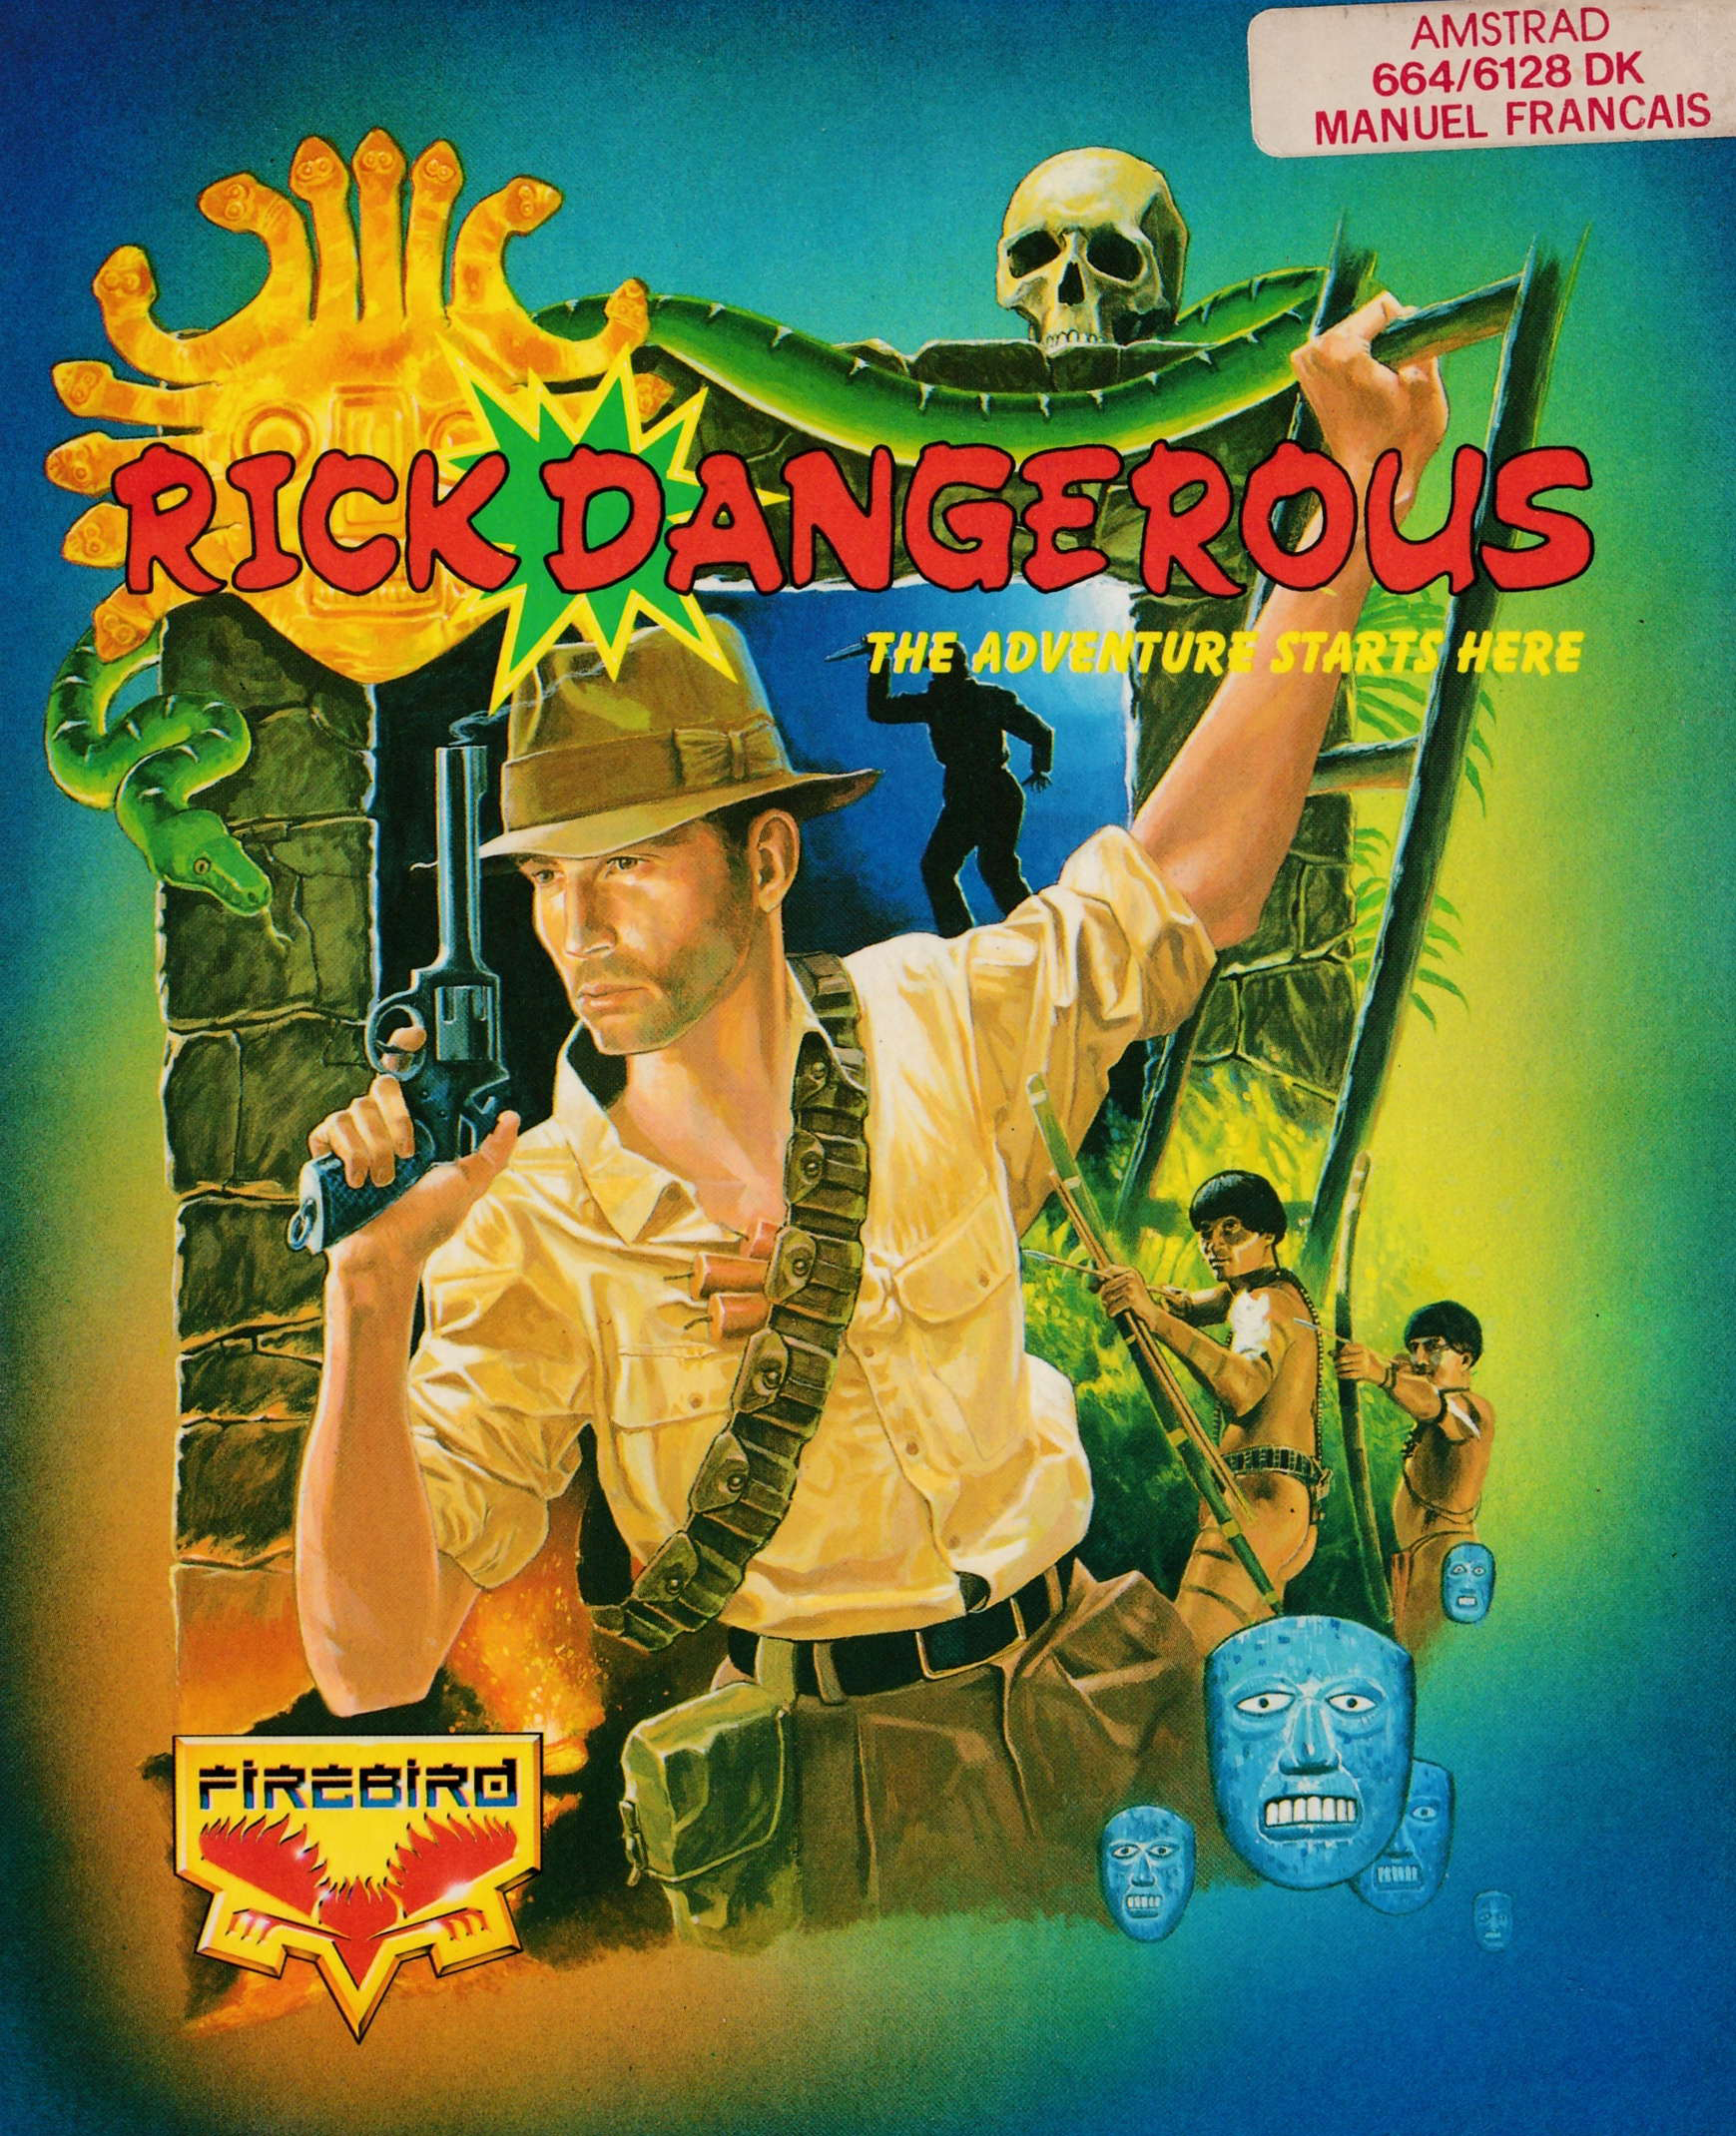 cover of the Amstrad CPC game Rick Dangerous  by GameBase CPC